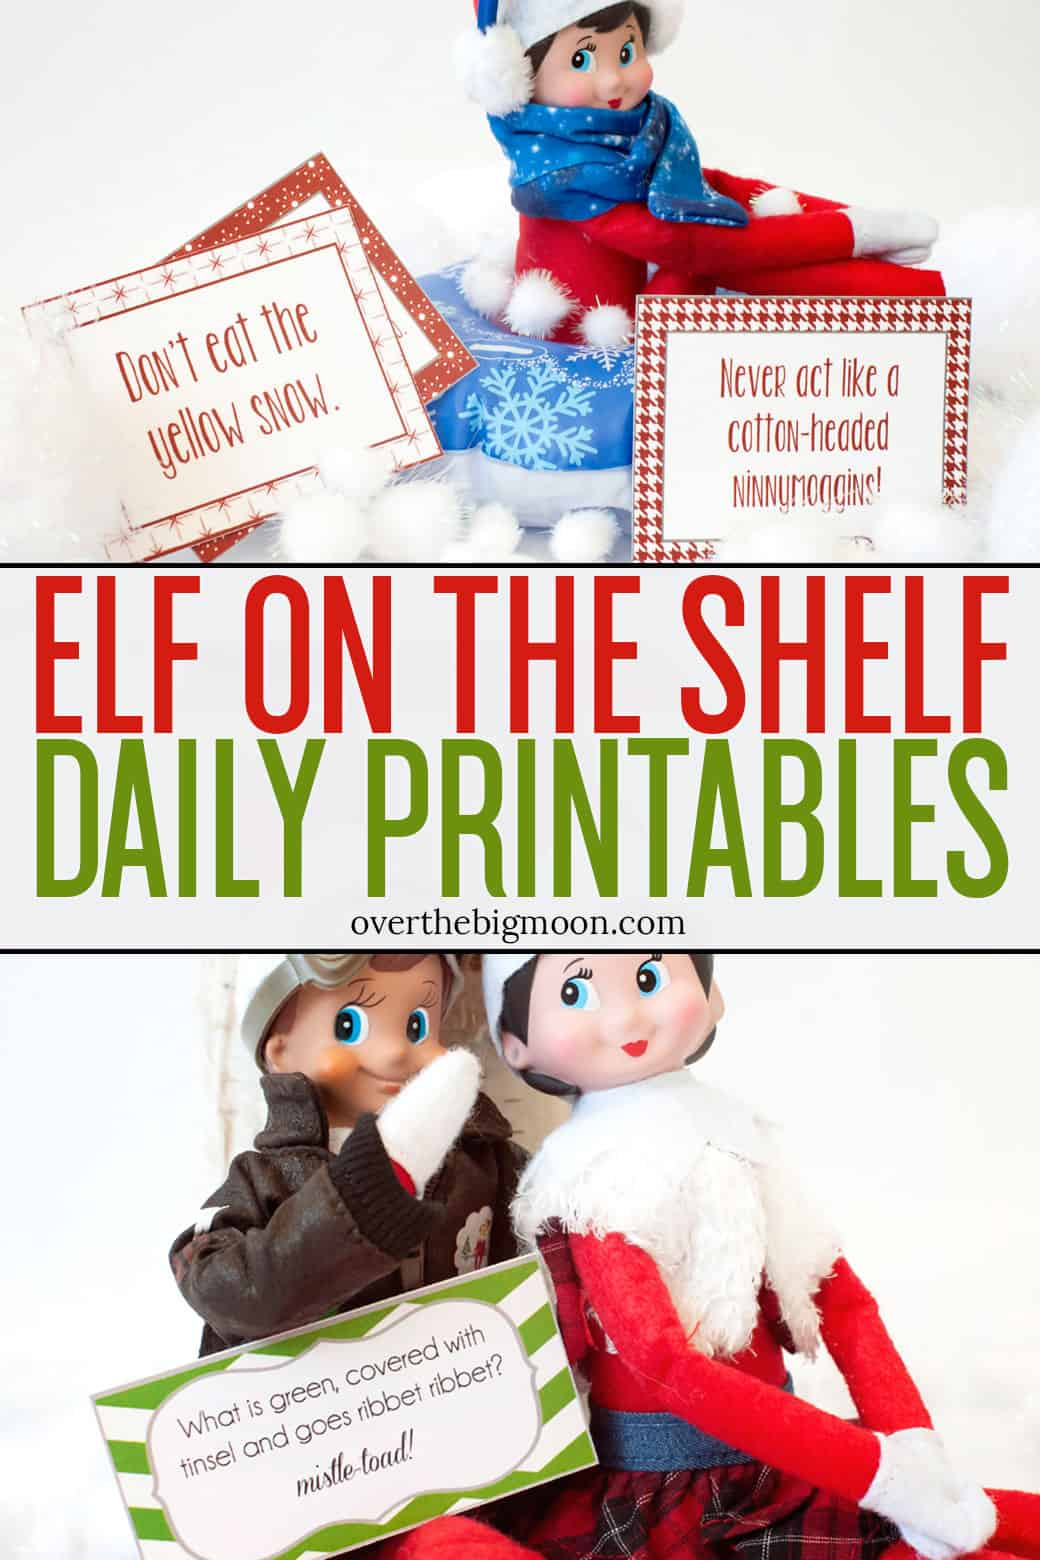 photo regarding Printable Elf titled Elf upon the Shelf Printables Tips Previously mentioned The Large Moon